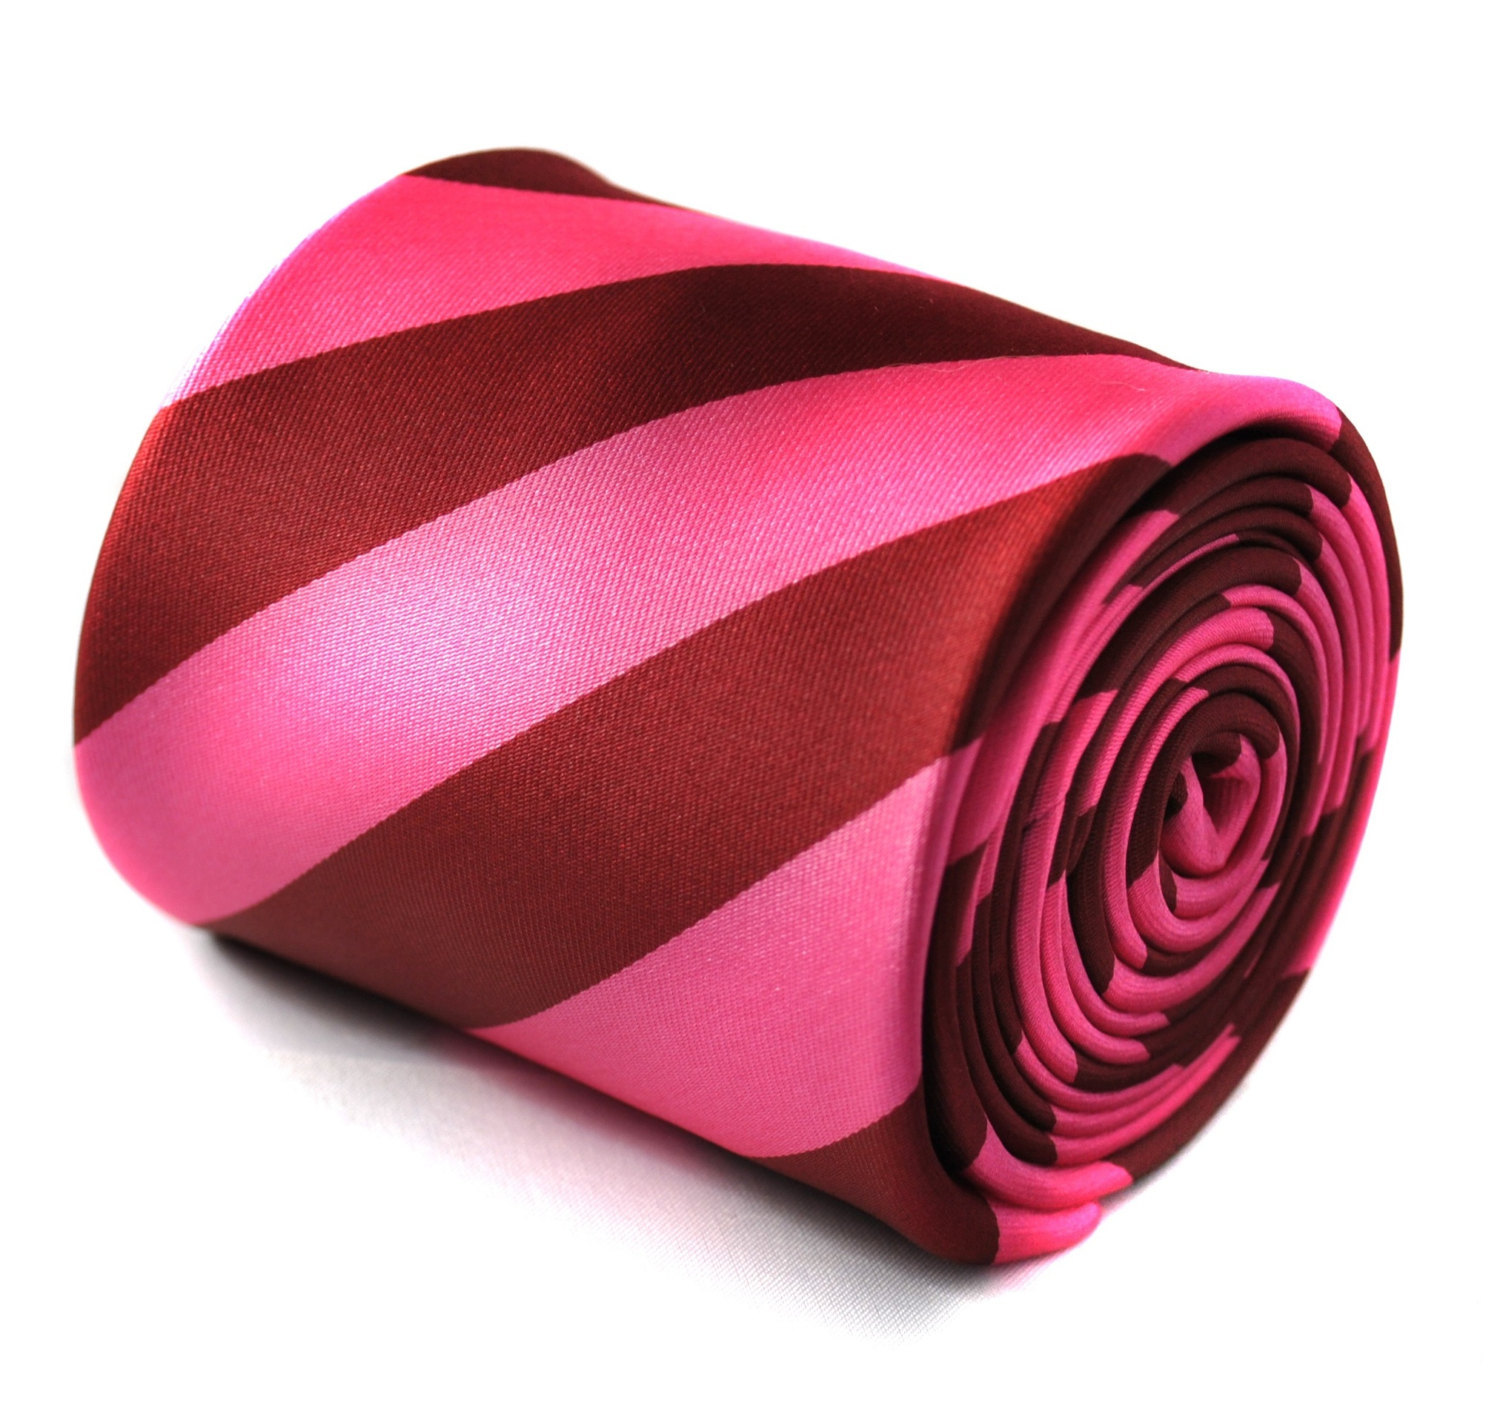 pink and red barber striped tie with signature floral design to the rear by Fred